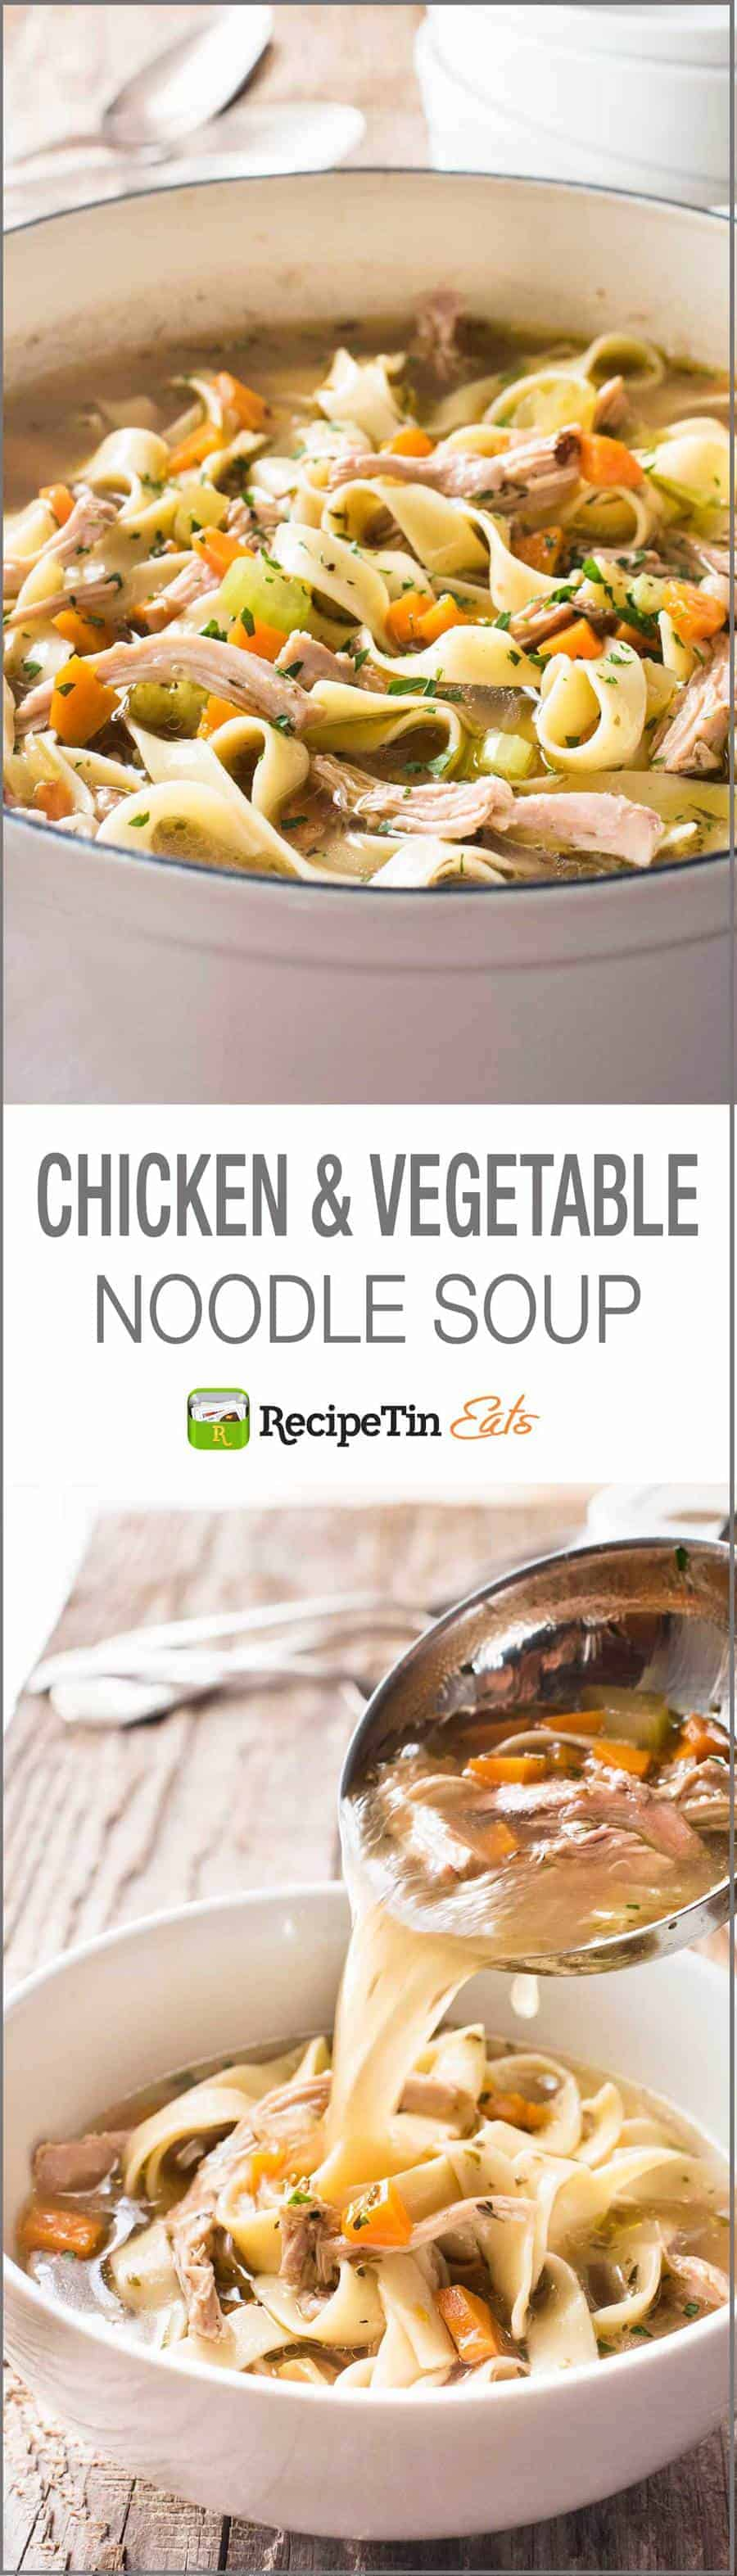 Chicken Vegetable Noodle Soup - Two little secret tips to make the BEST easiest midweek version you've ever had!